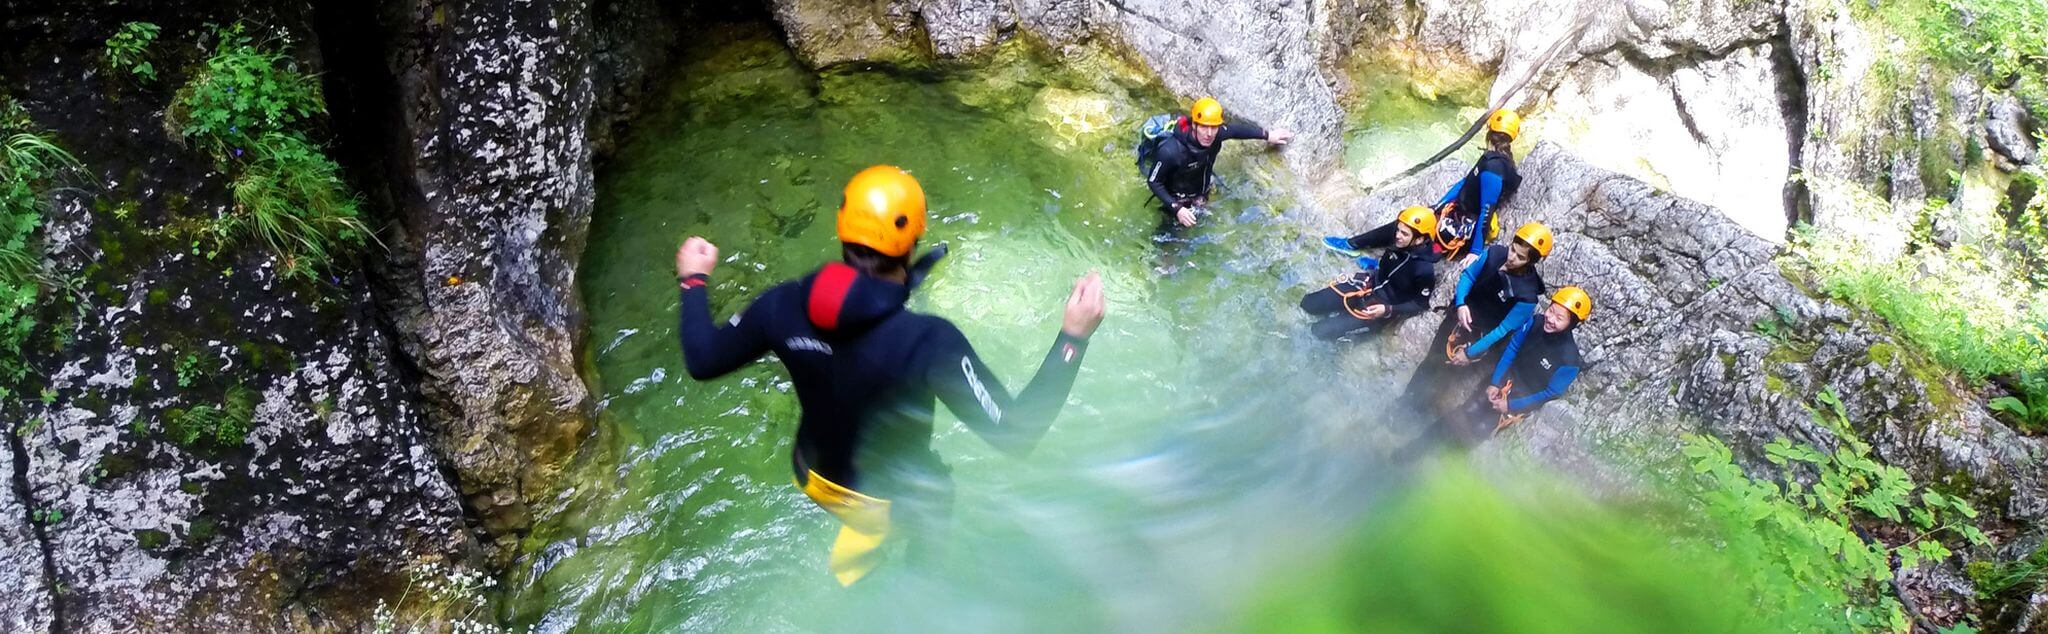 Canyoning in Valladolid